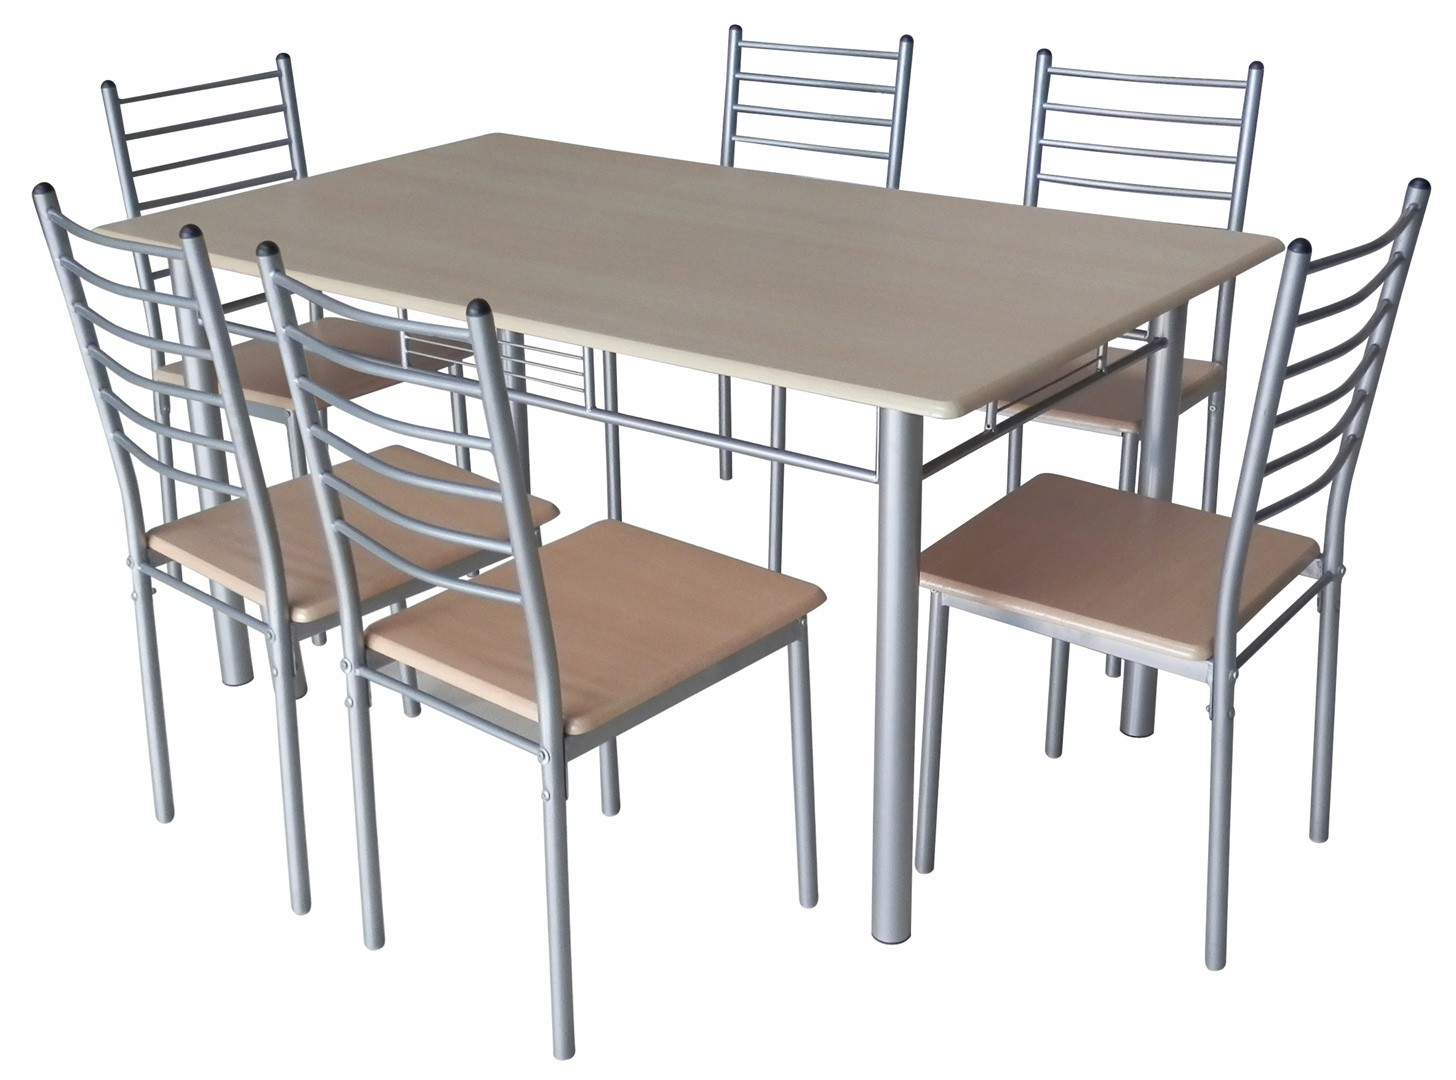 Ensemble table et chaises de cuisine but chaise id es de d coration de maison grwnqmpn8m - Table et chaise de cuisine ...